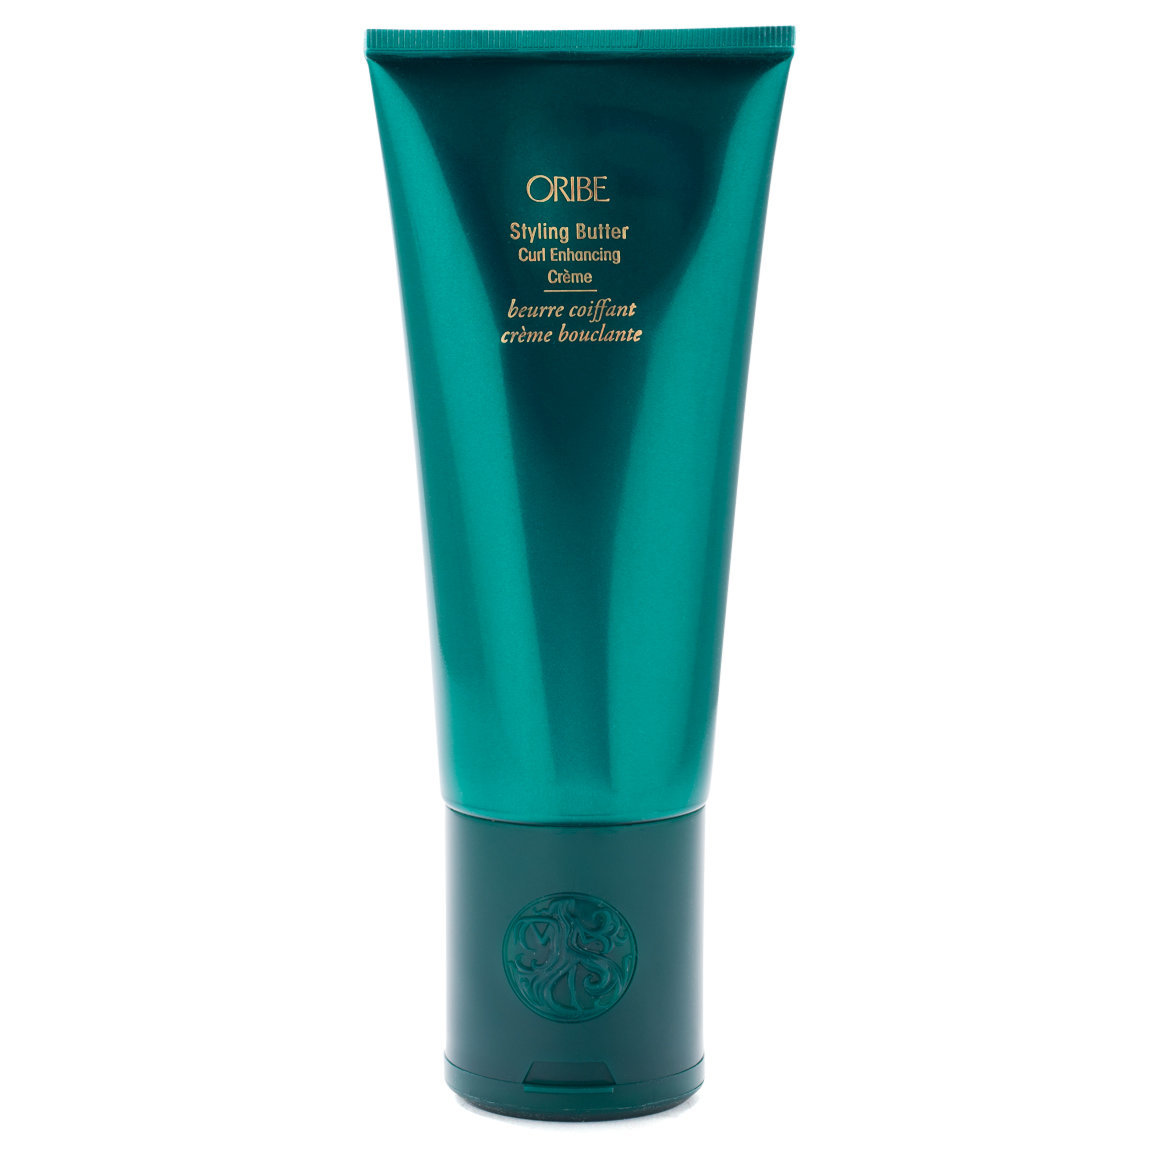 Oribe Styling Butter Curl Enhancing Crème product smear.